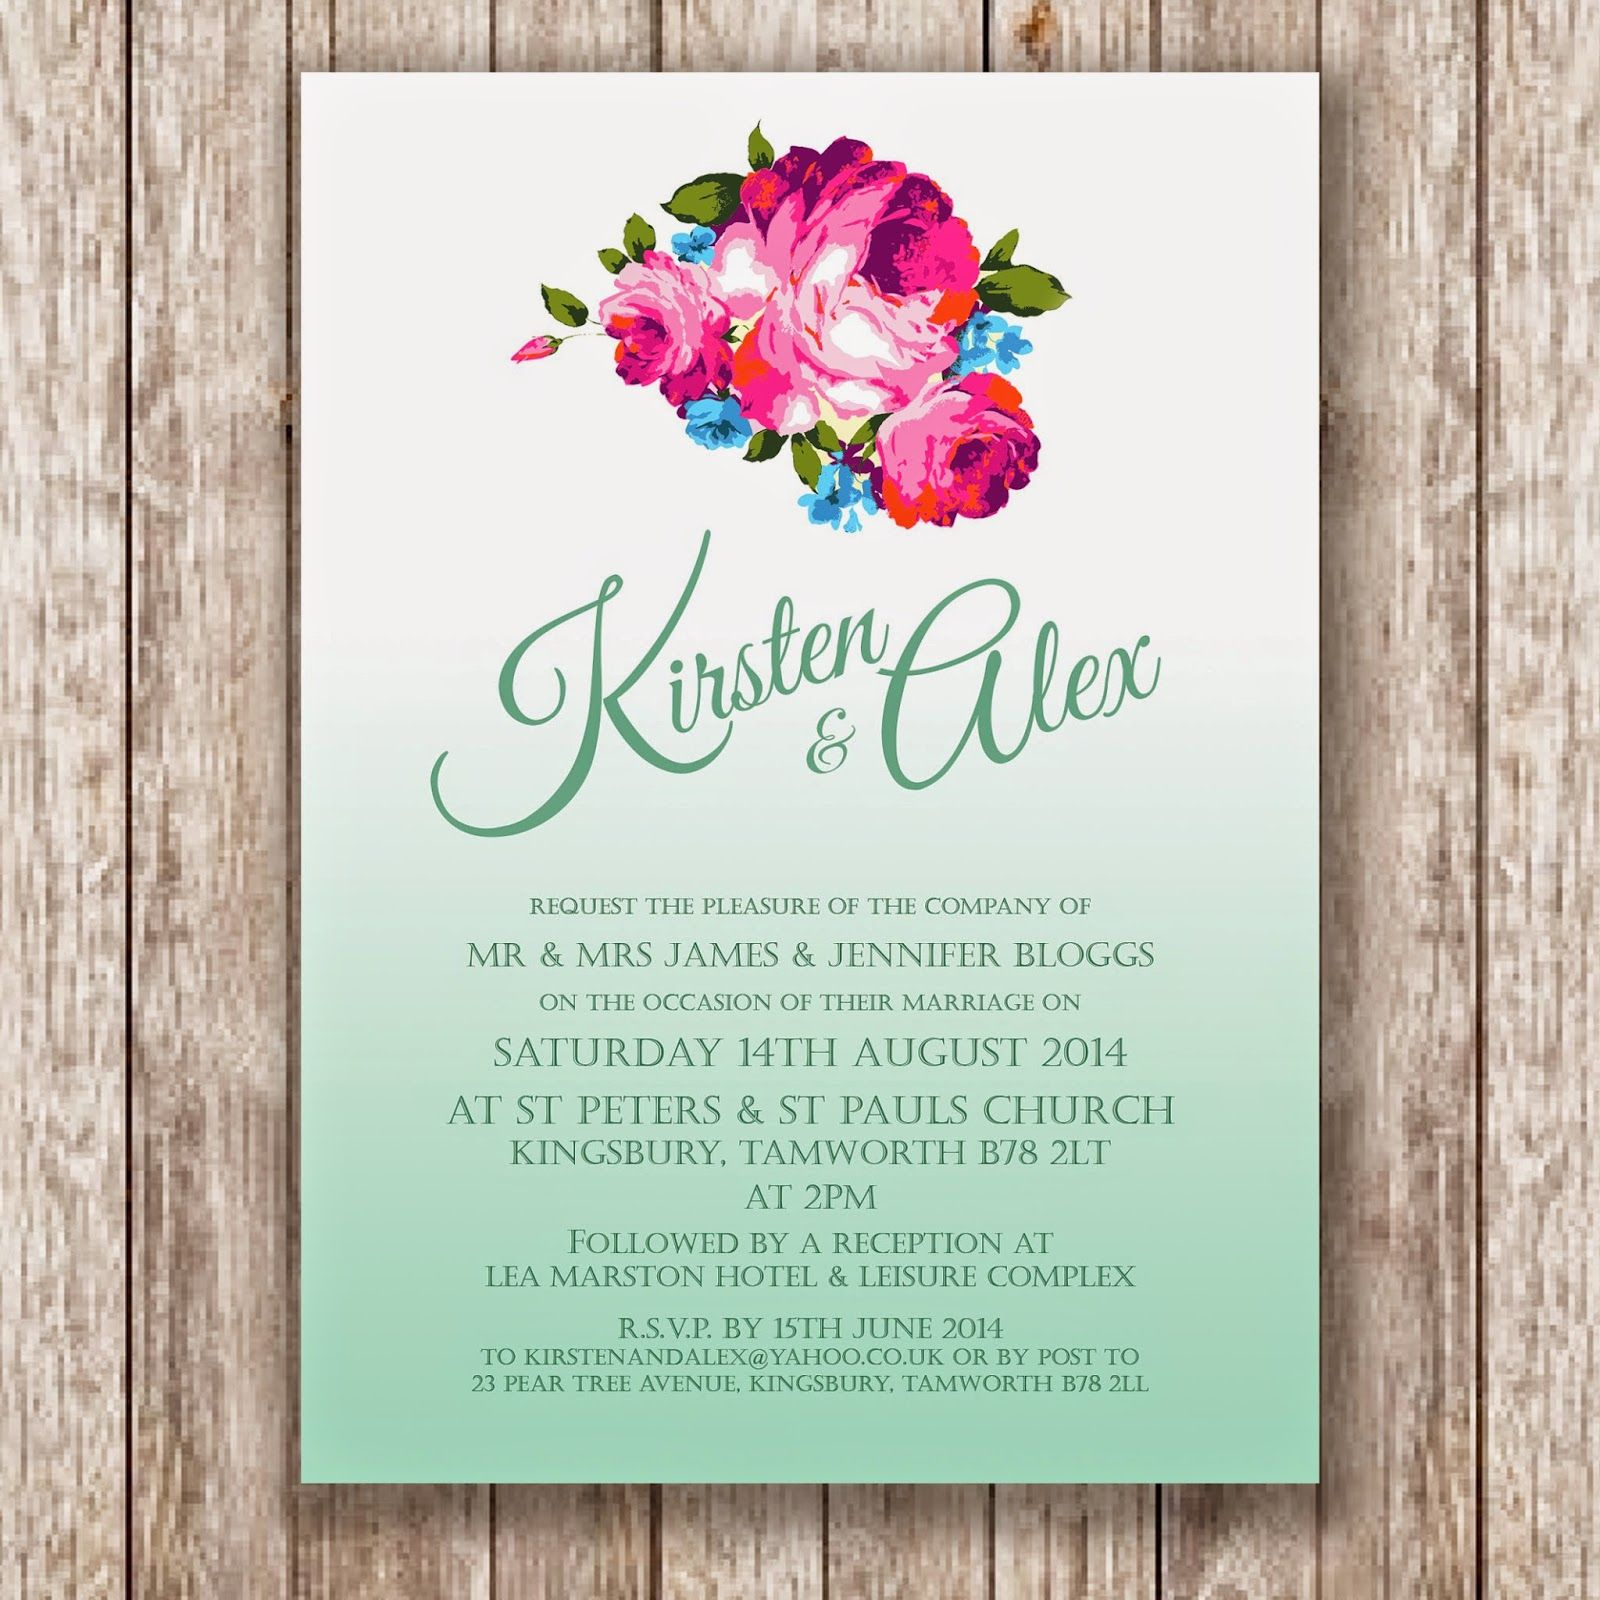 Awesome Create Own Digital Wedding Invitations Ideas Electronic Wedding Invitations Digital Wedding Invitations Wedding Invitation Design